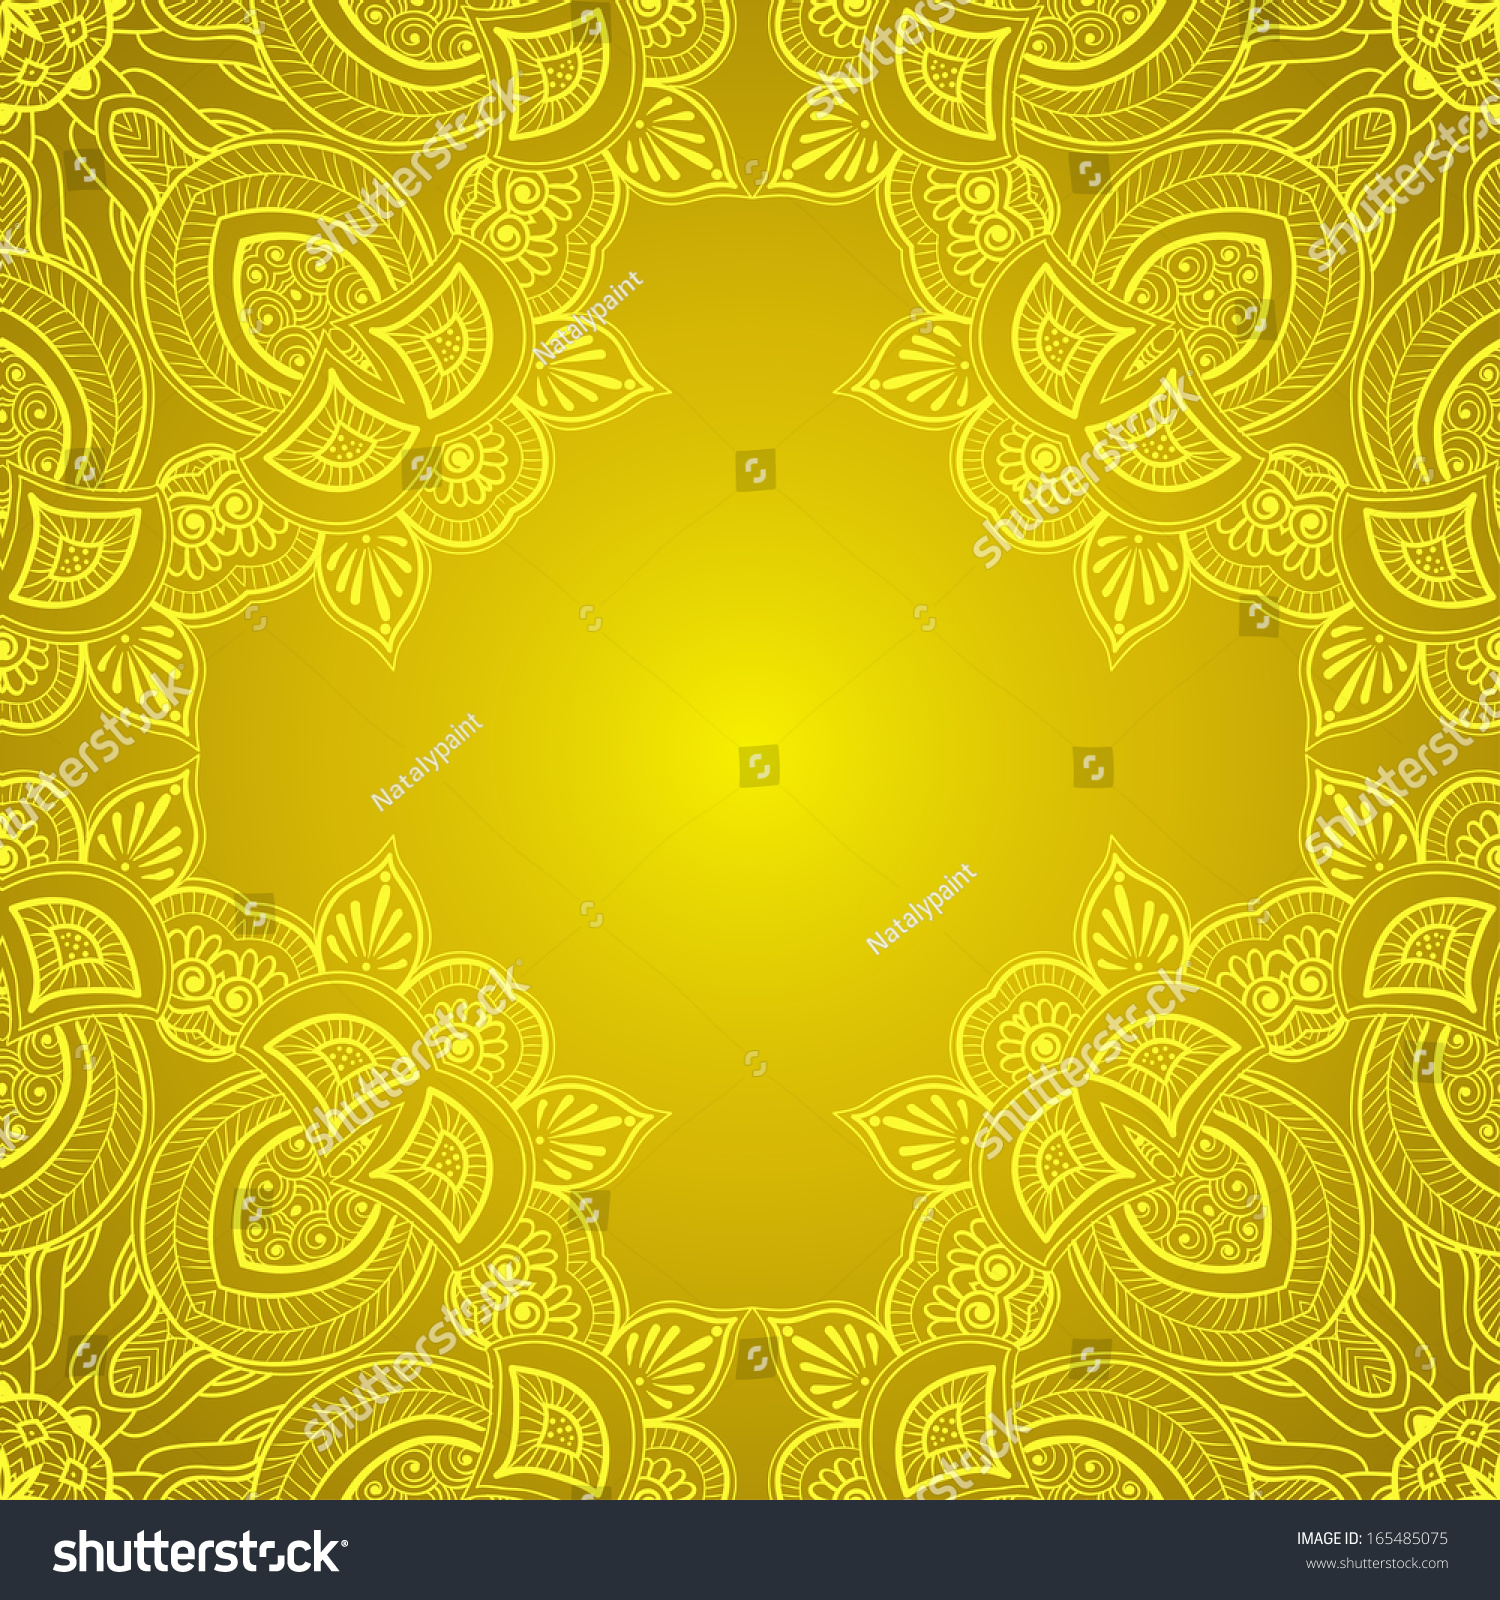 Vector Background Celebrations Holidays Sewing Arts Stock Vector ...